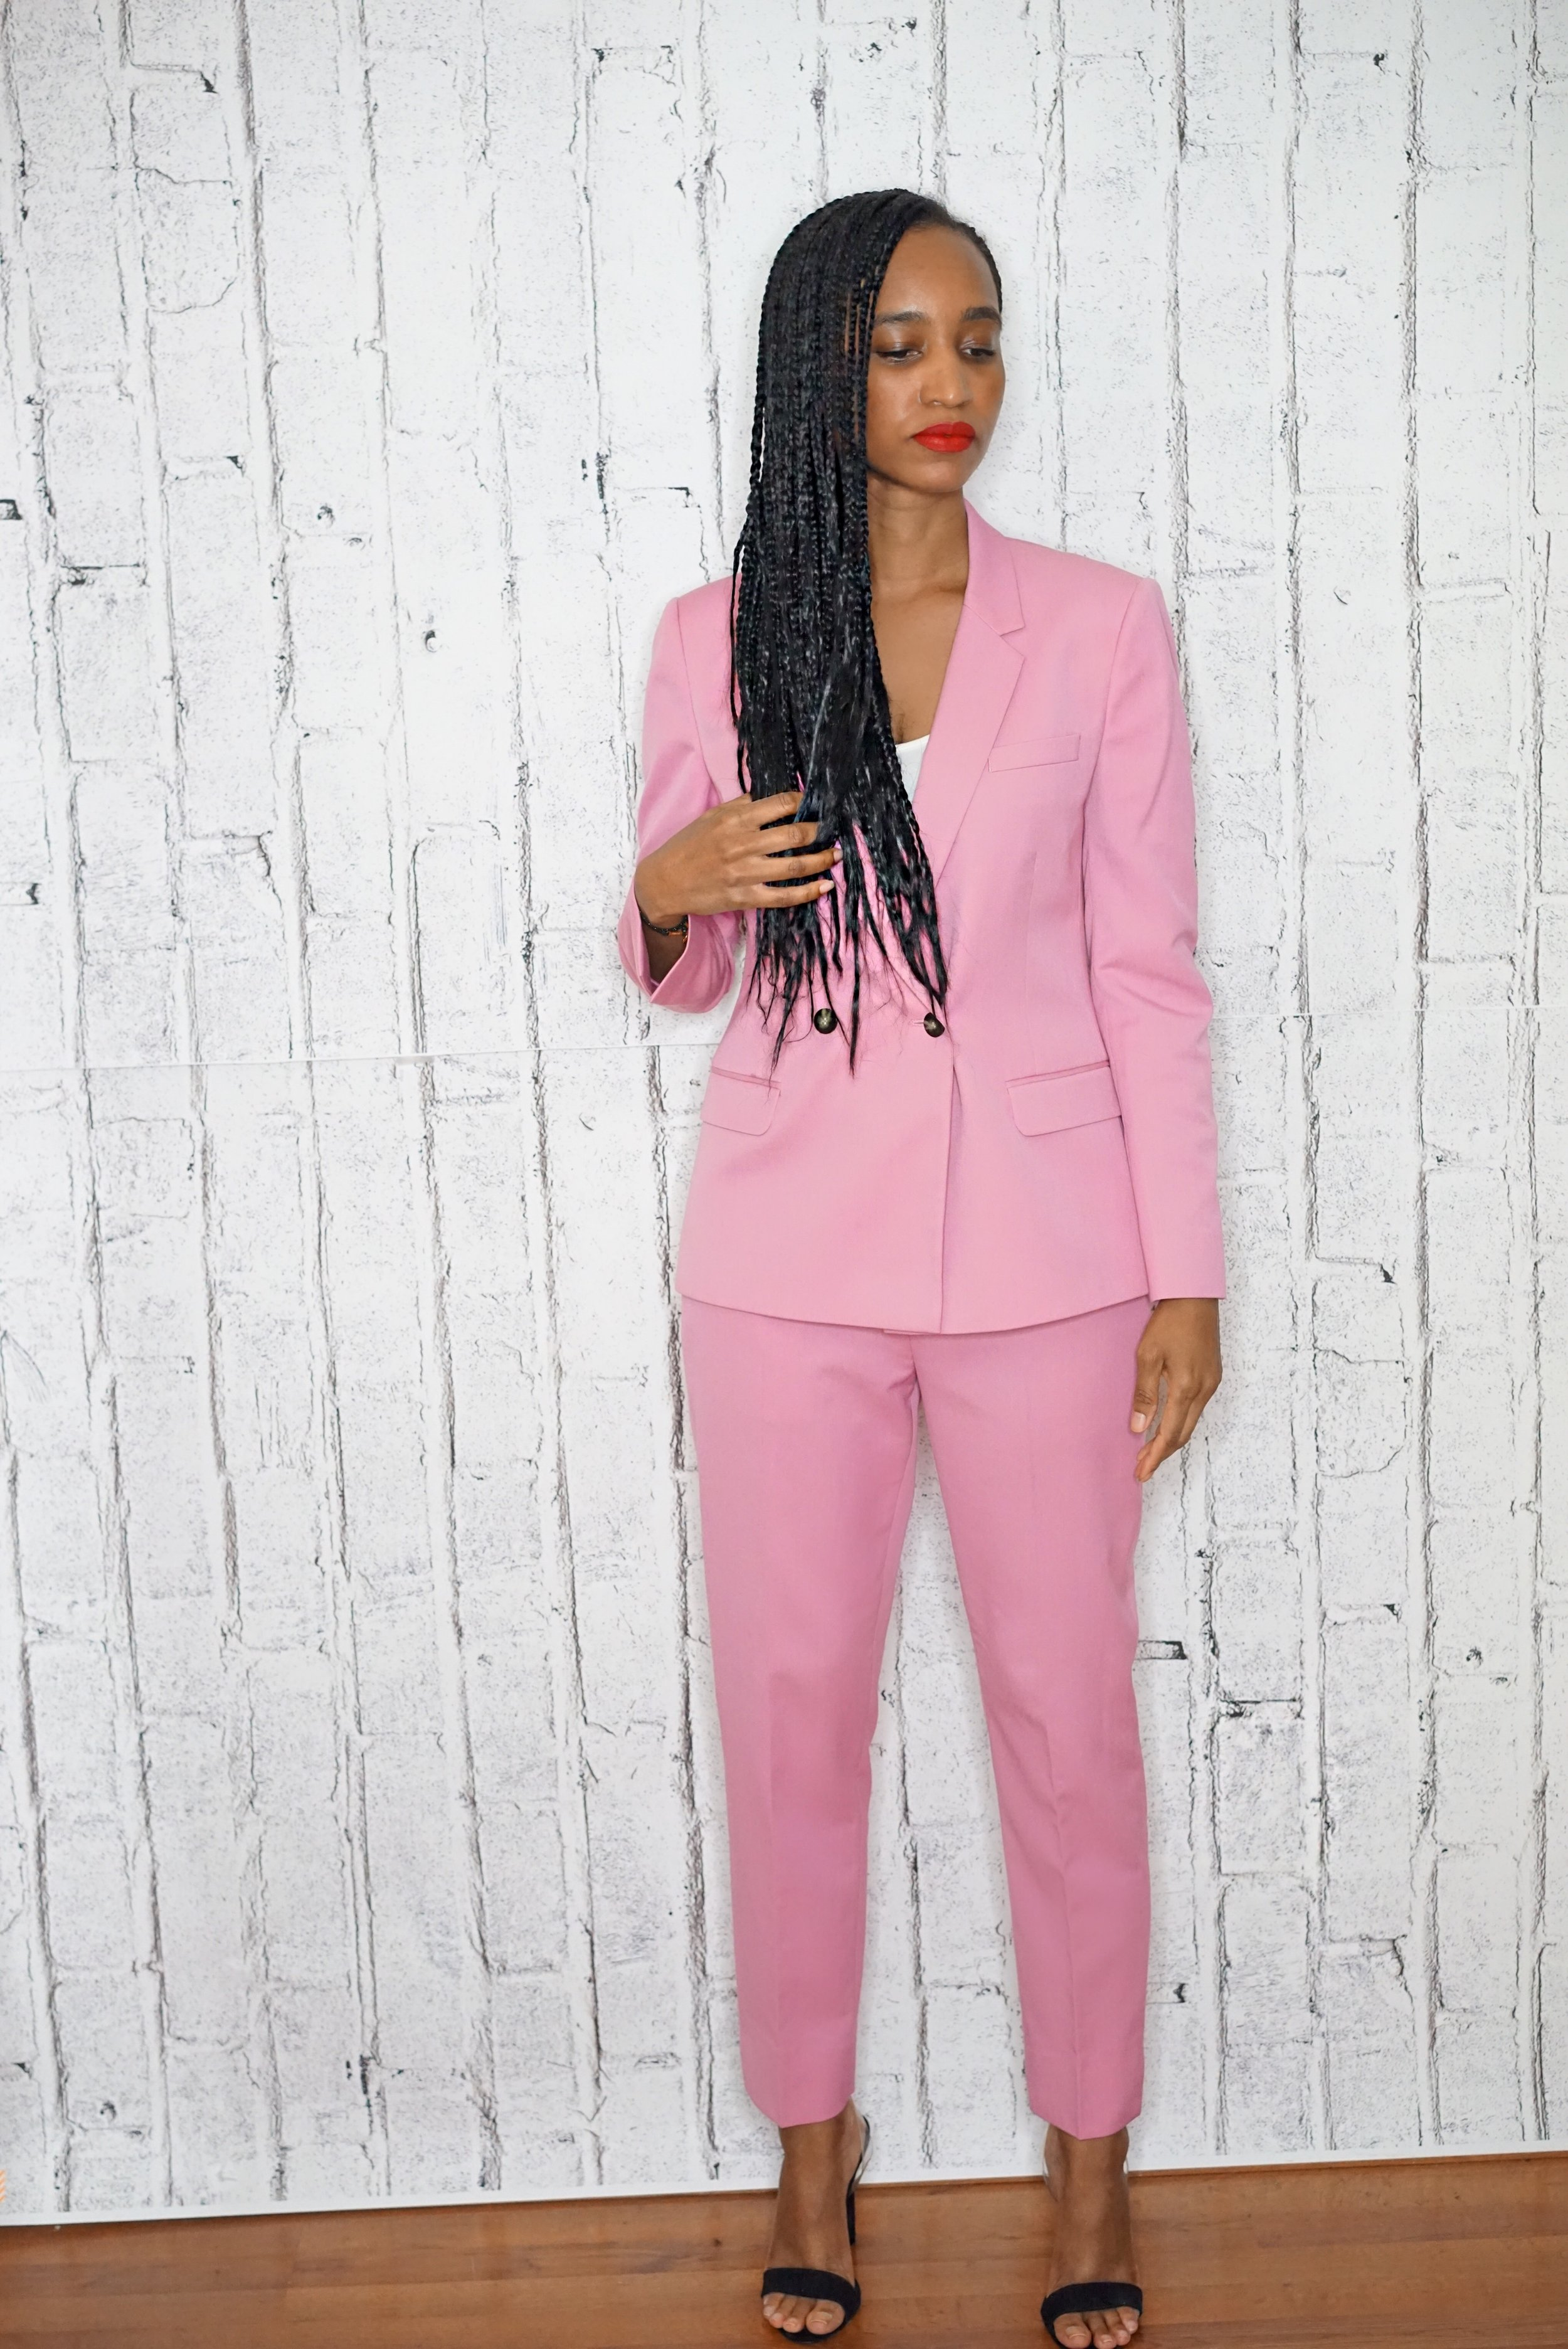 christine_the_style_d_affaire_suit_trousers_blazers_topshop_top_white_pink_lipstick_fenty_beauty_rihanna_miansai_bracelet_steve_madden_shoes_suede_fall_winter_spring_collection.JPG